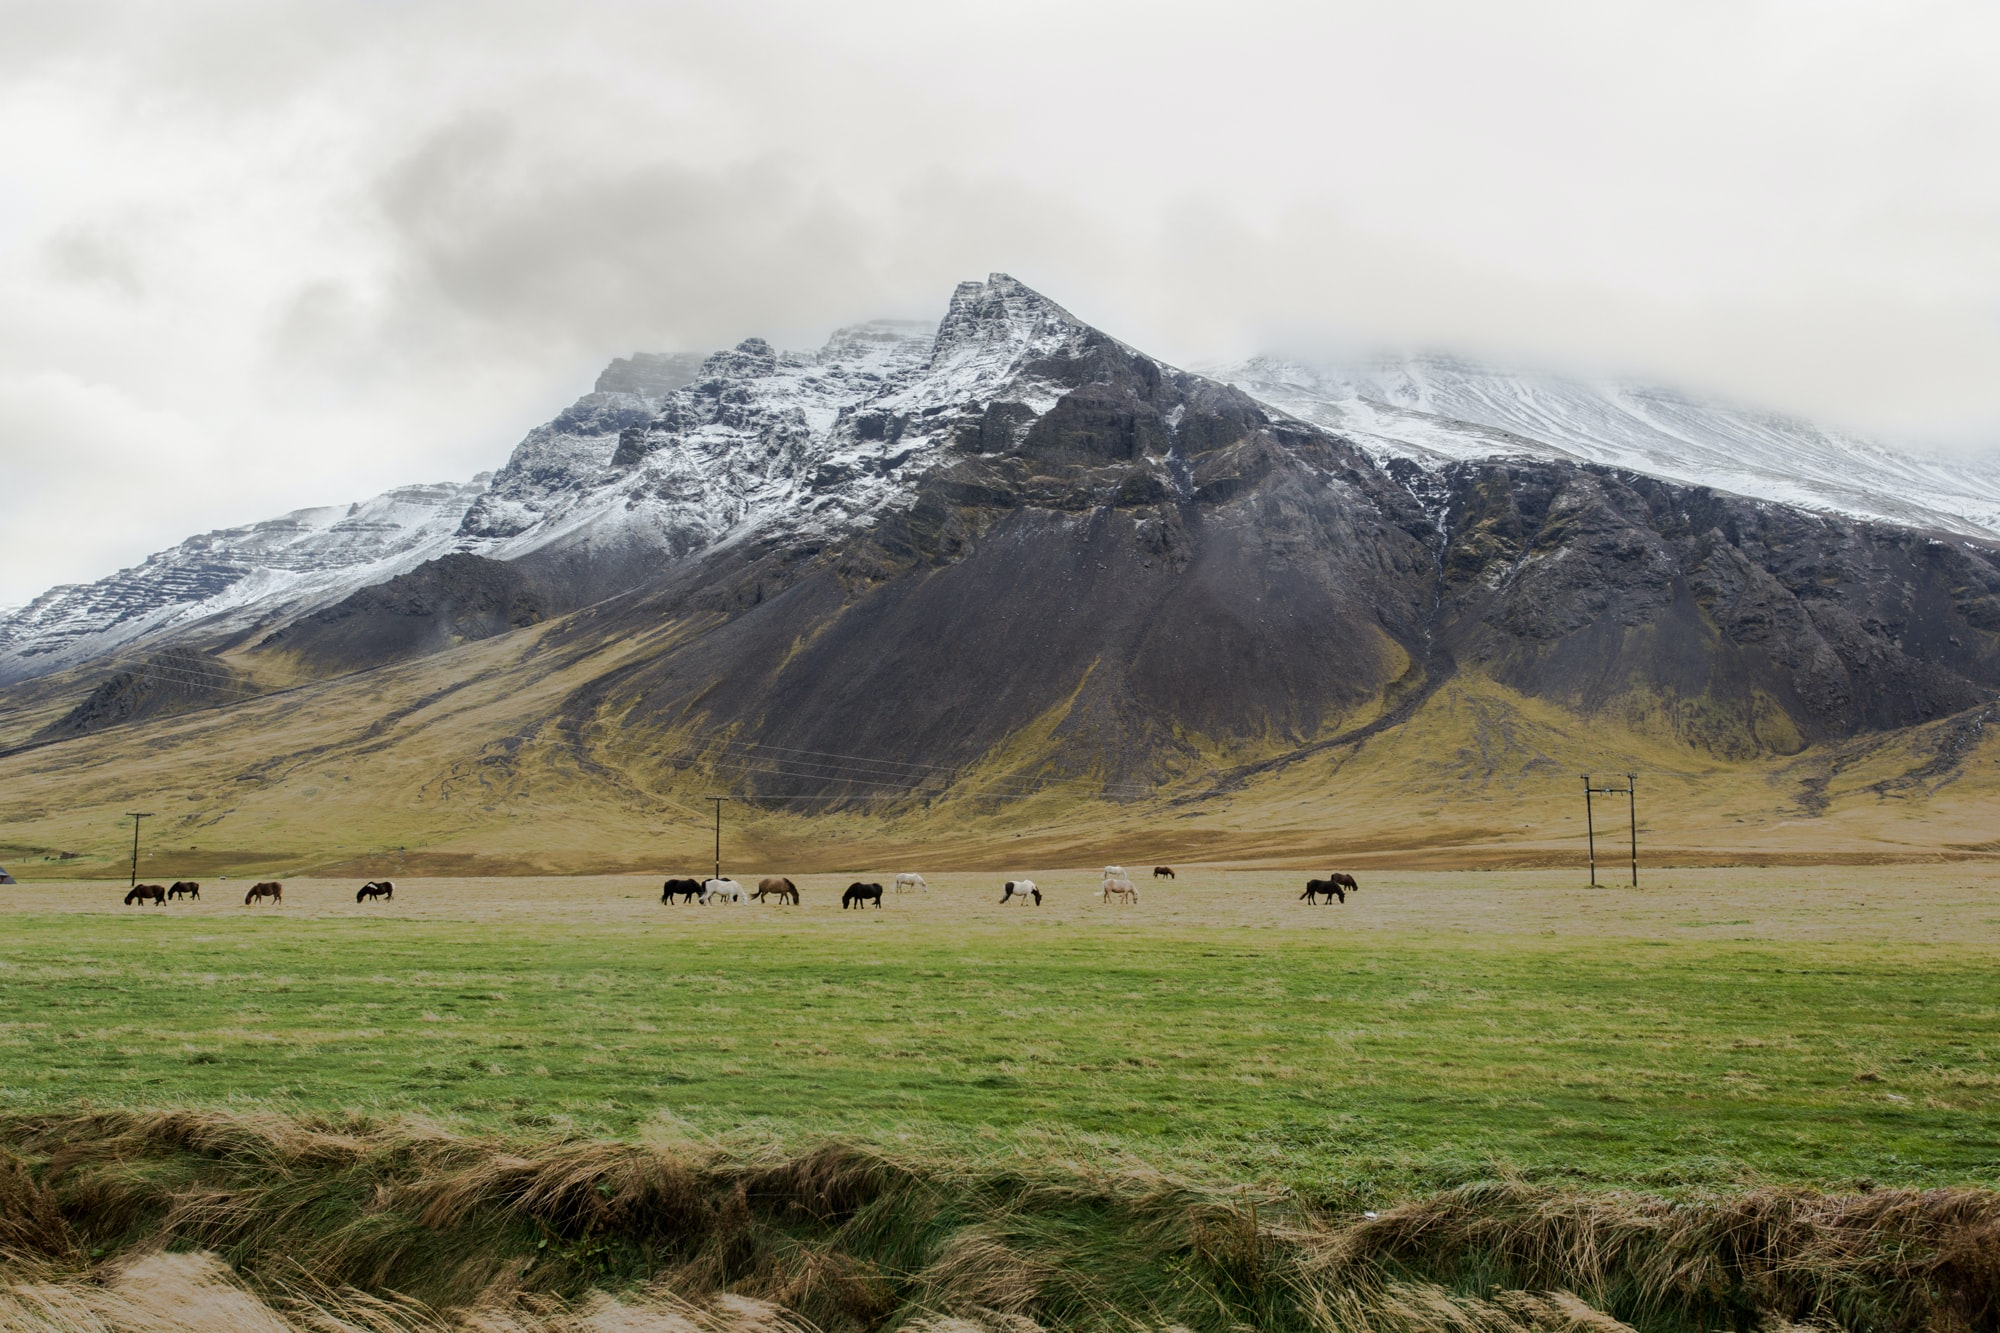 A herd of horses grazing at the foot of a steep snowy mountain